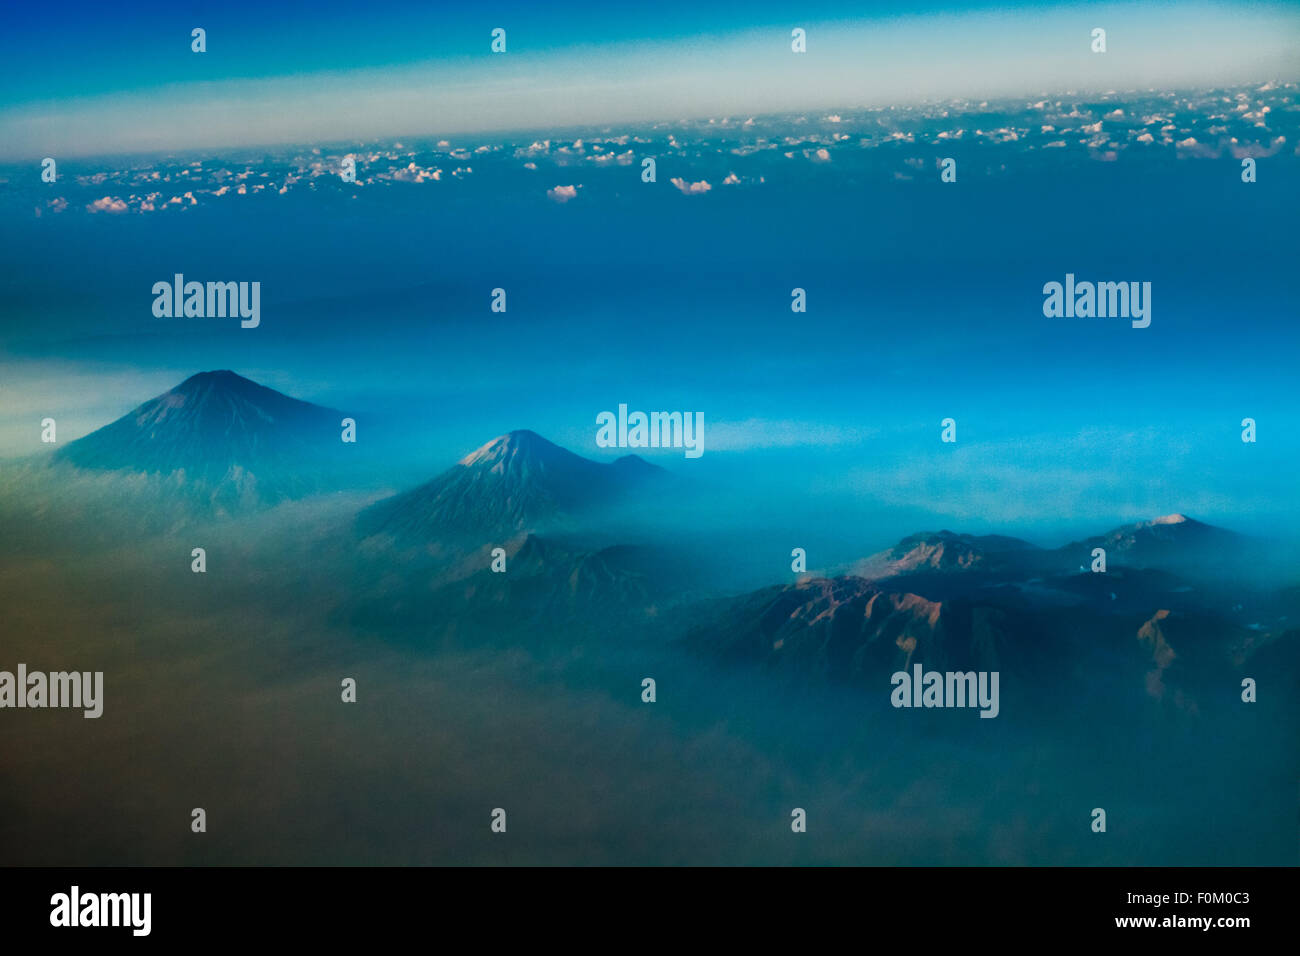 Aerial view of Mount Sumbing, Sundoro, and Dieng Plateau in Central Java, Indonesia. © Reynold Sumayku - Stock Image